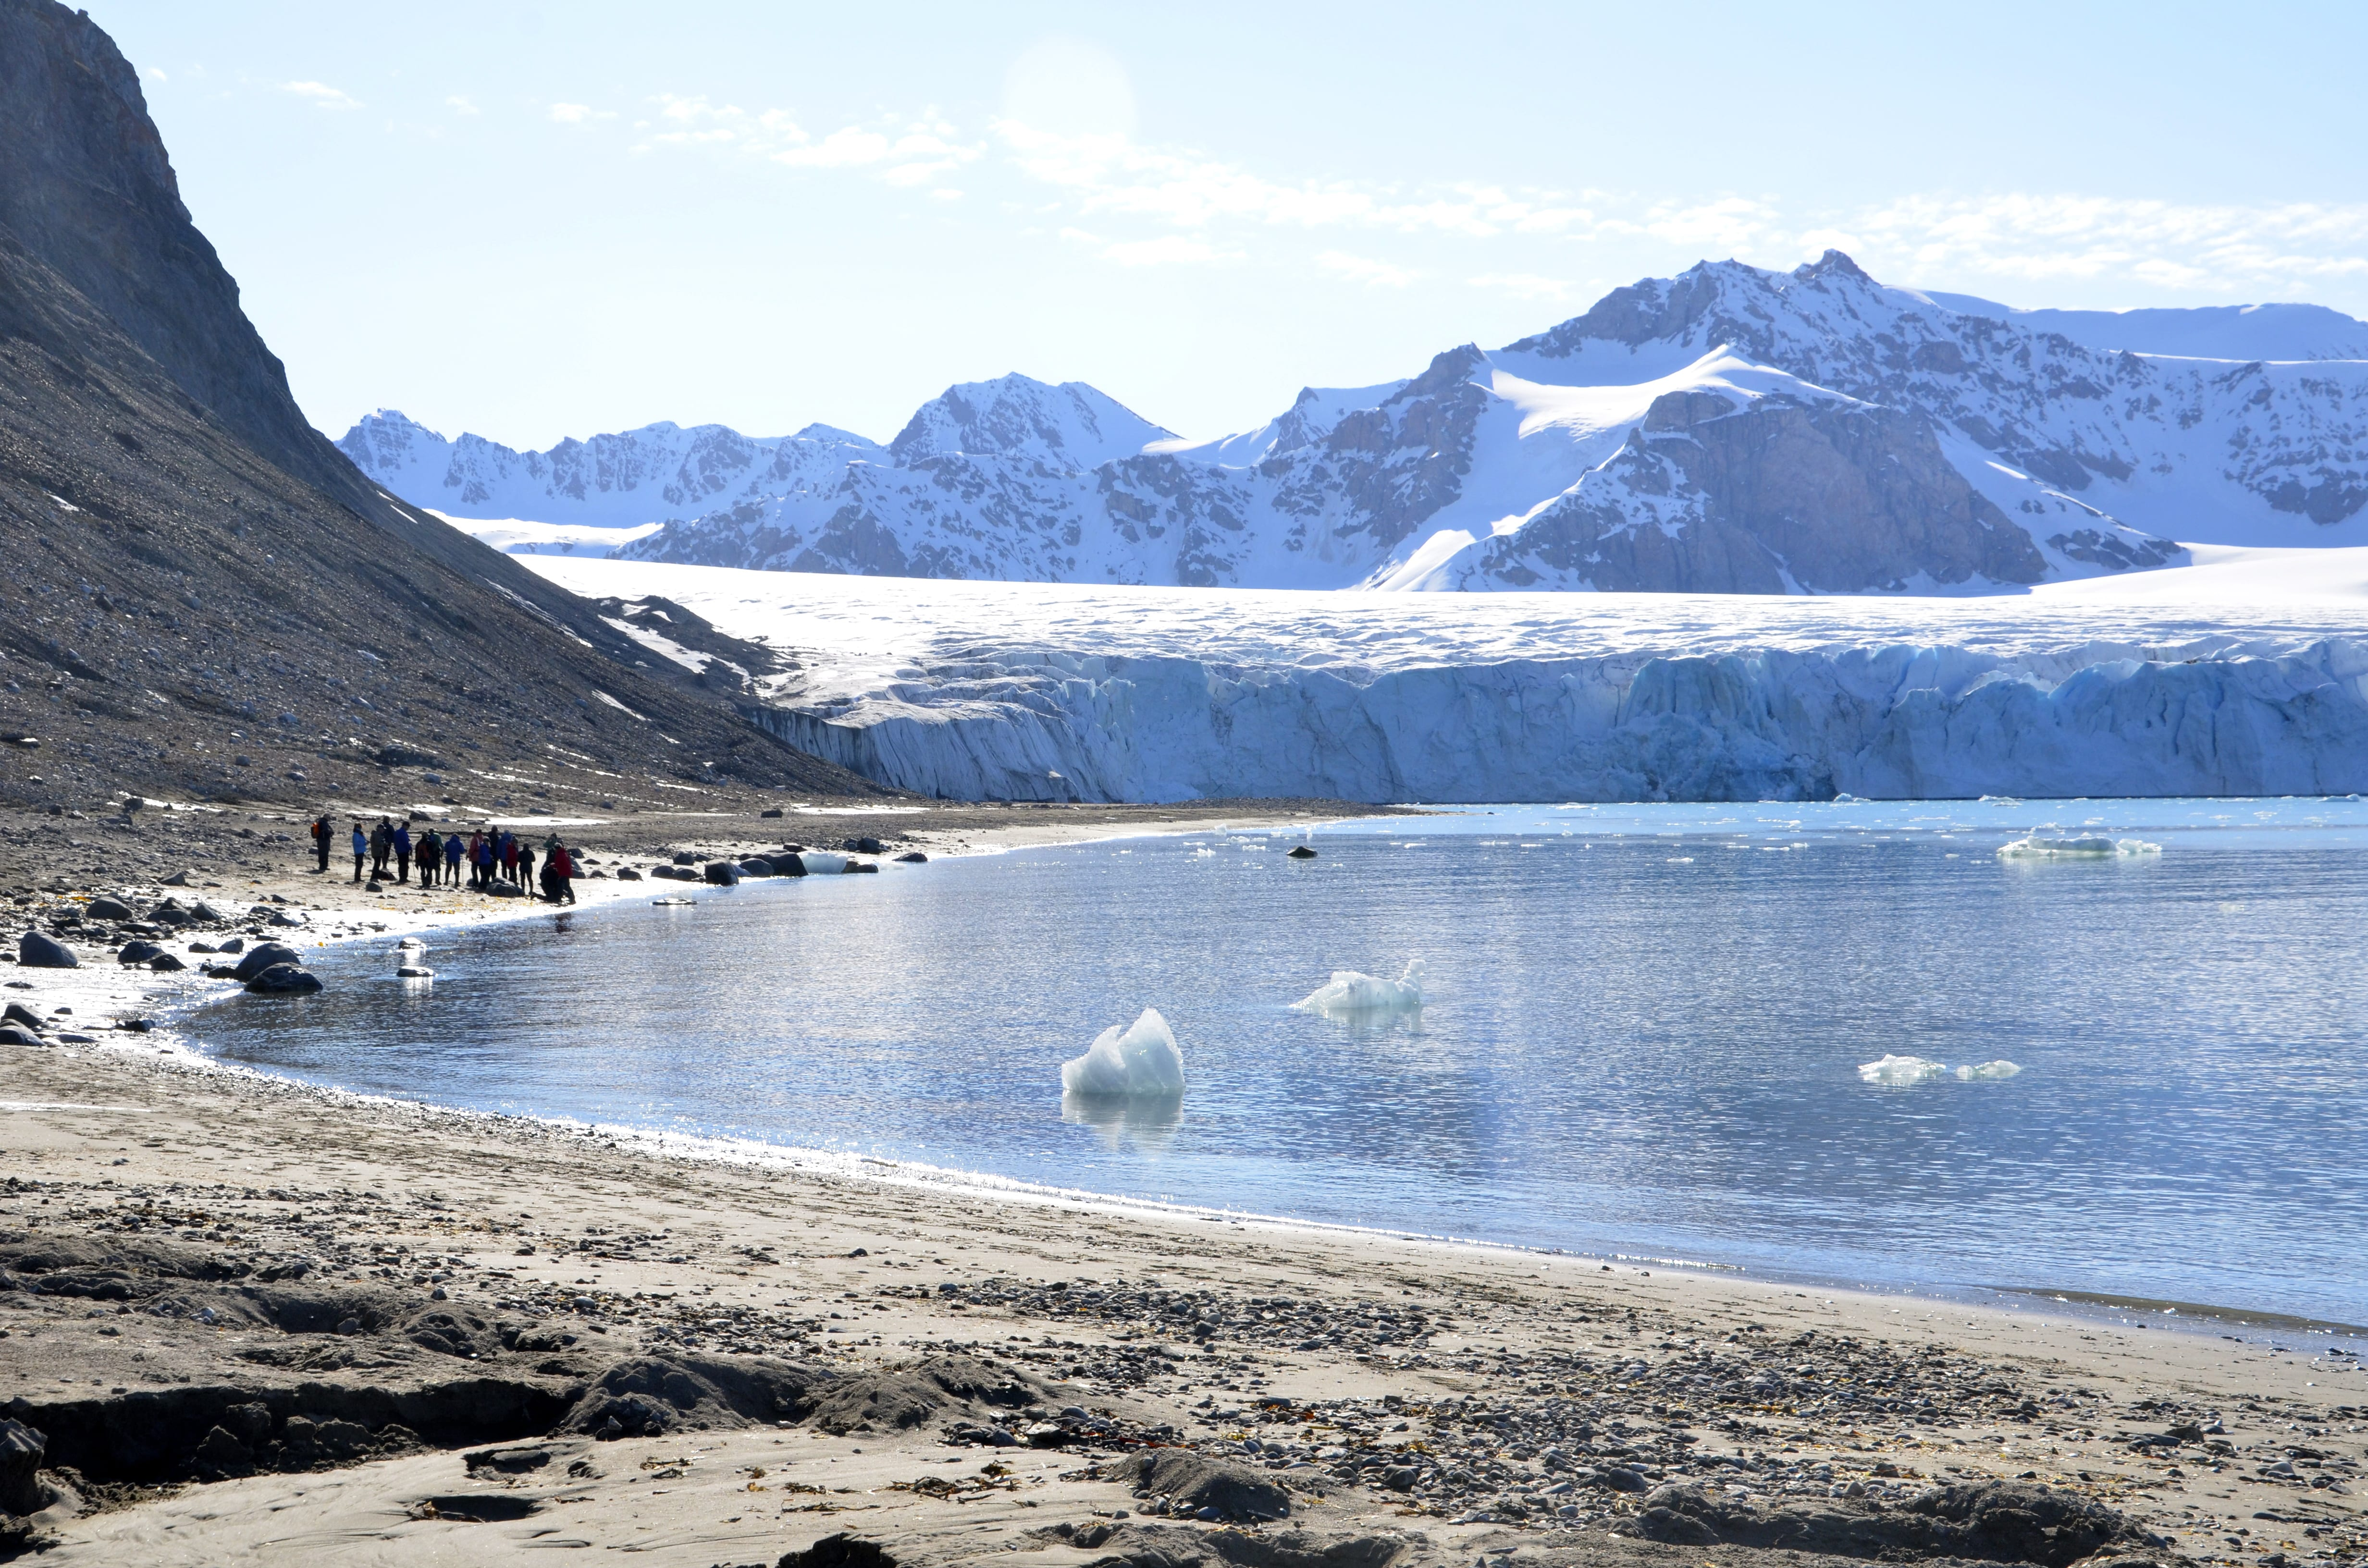 The last day of our arctic circle expedition turned out to be one of